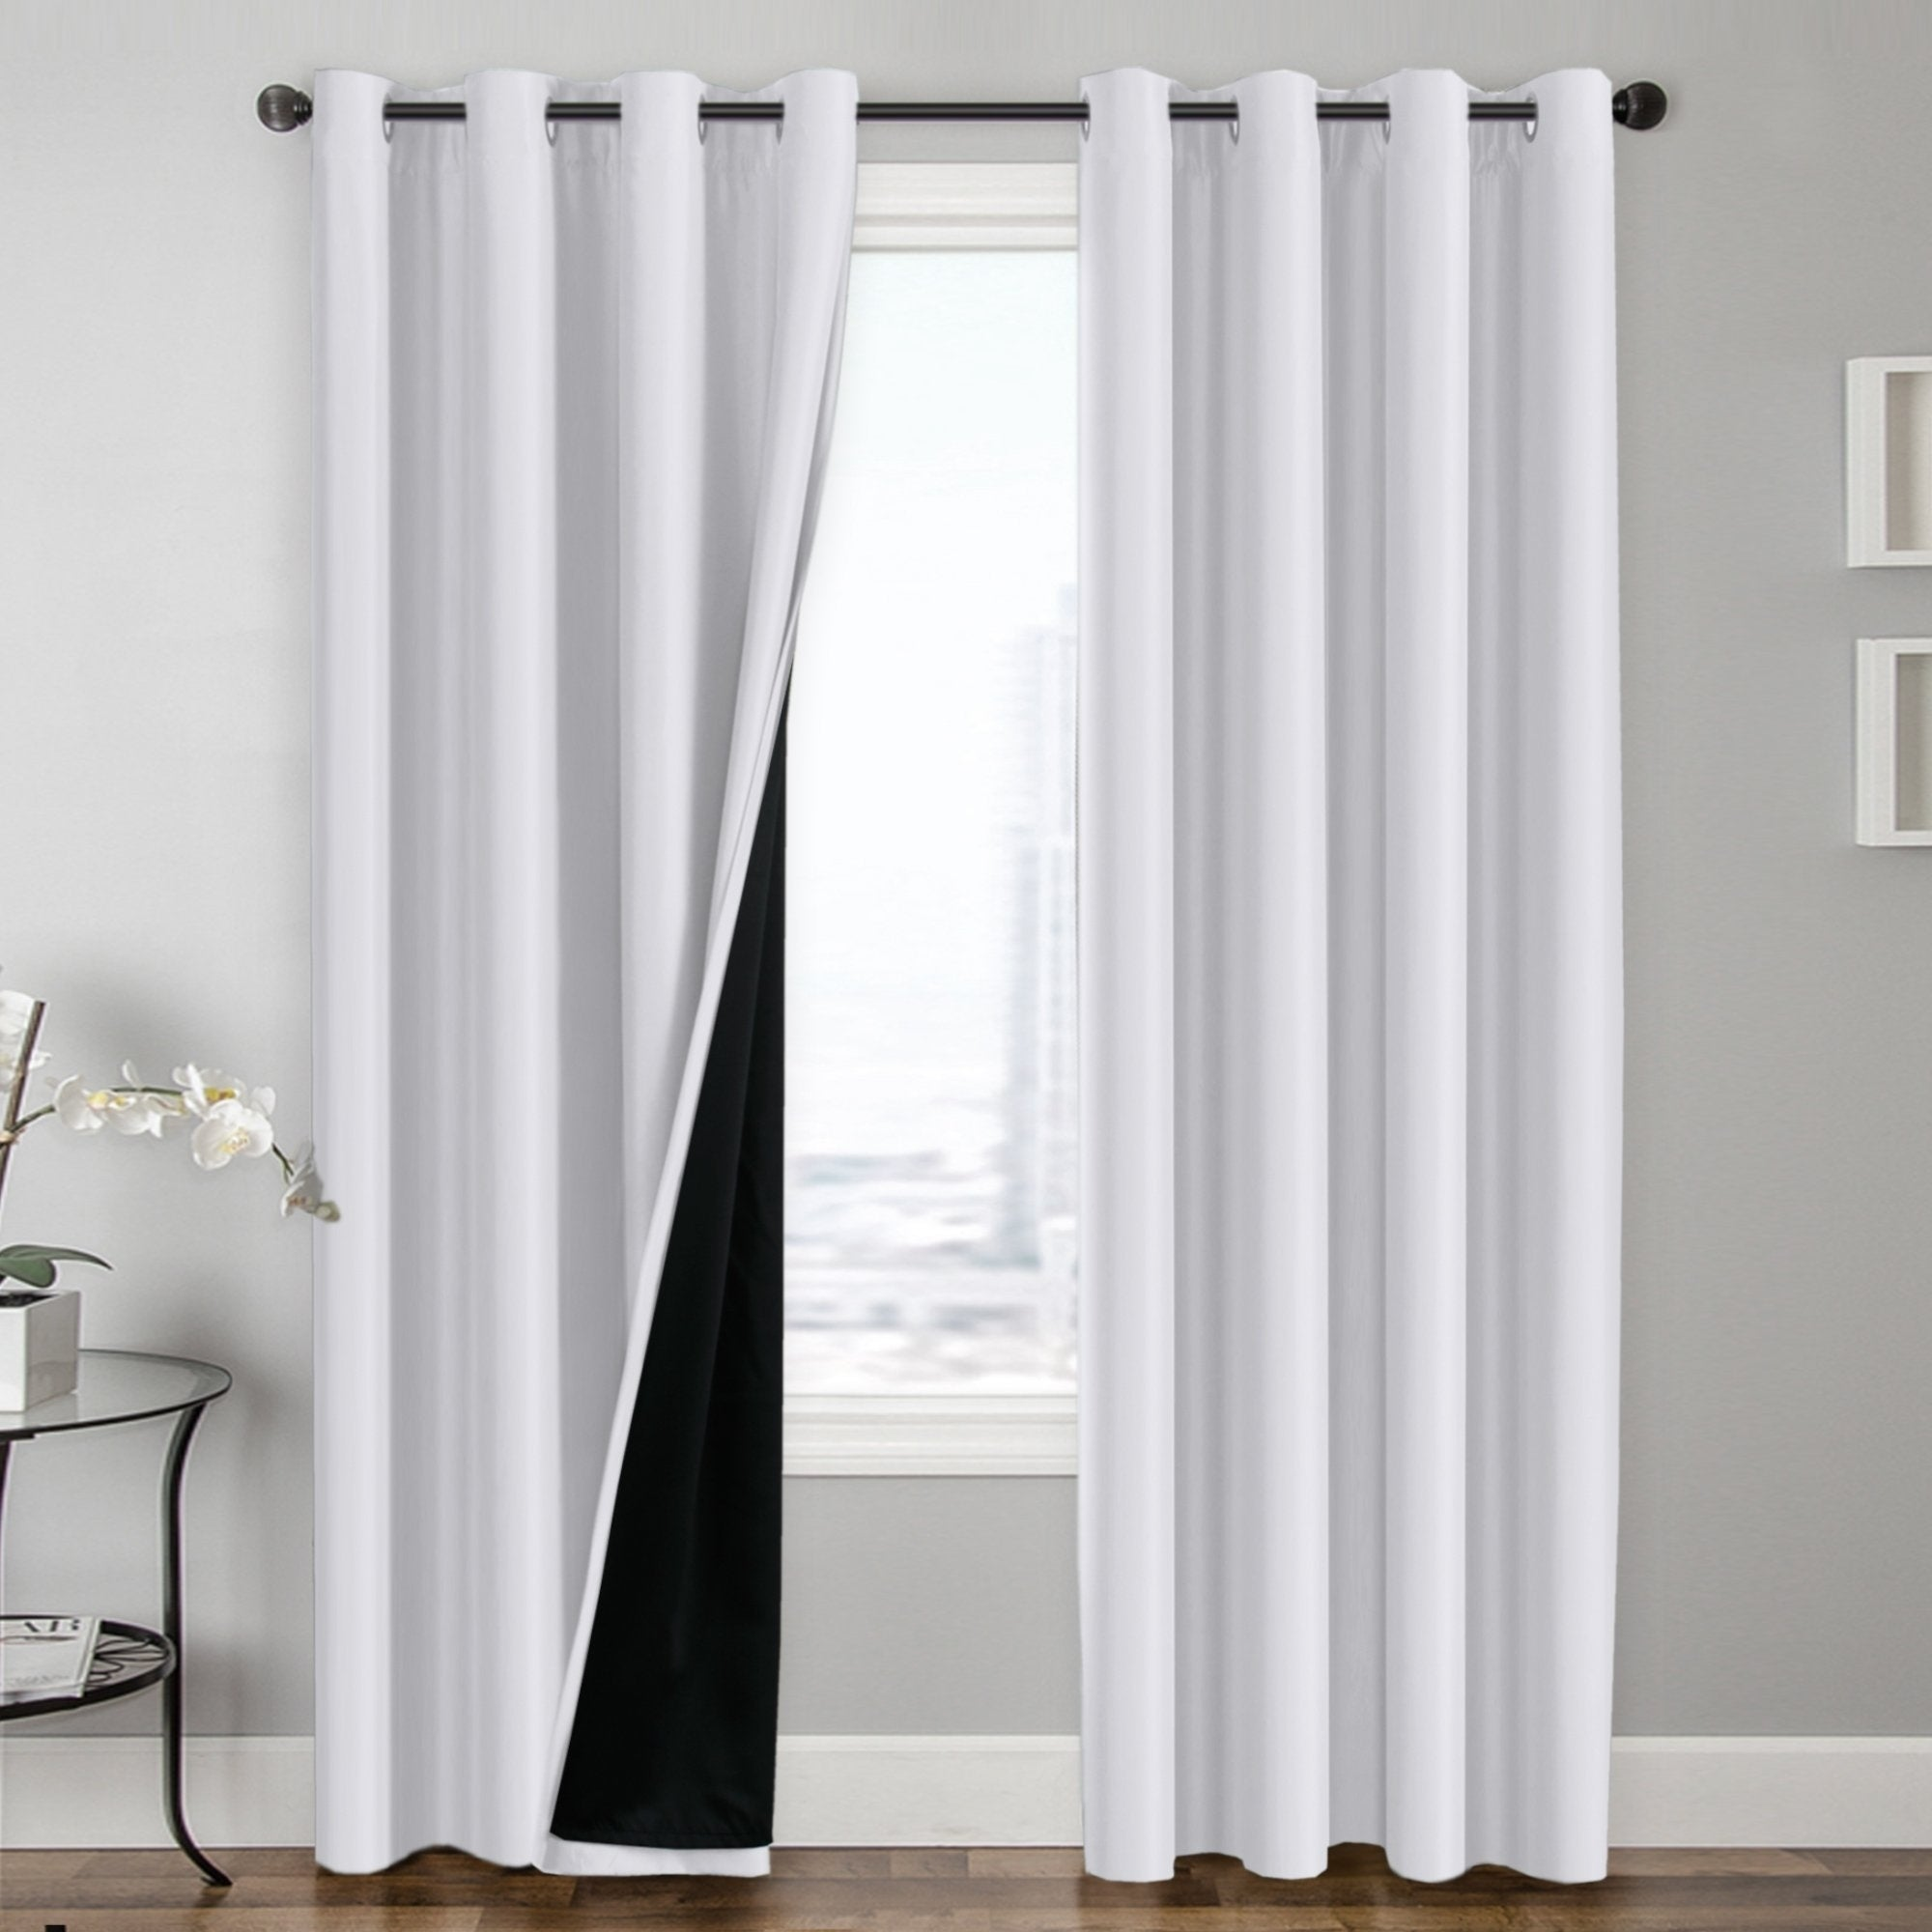 for energy curtains draperies window astounding jcpenney ideas efficient kitchen dressings blinds curtain sheers drapes blackout covering valances pennys blin gray